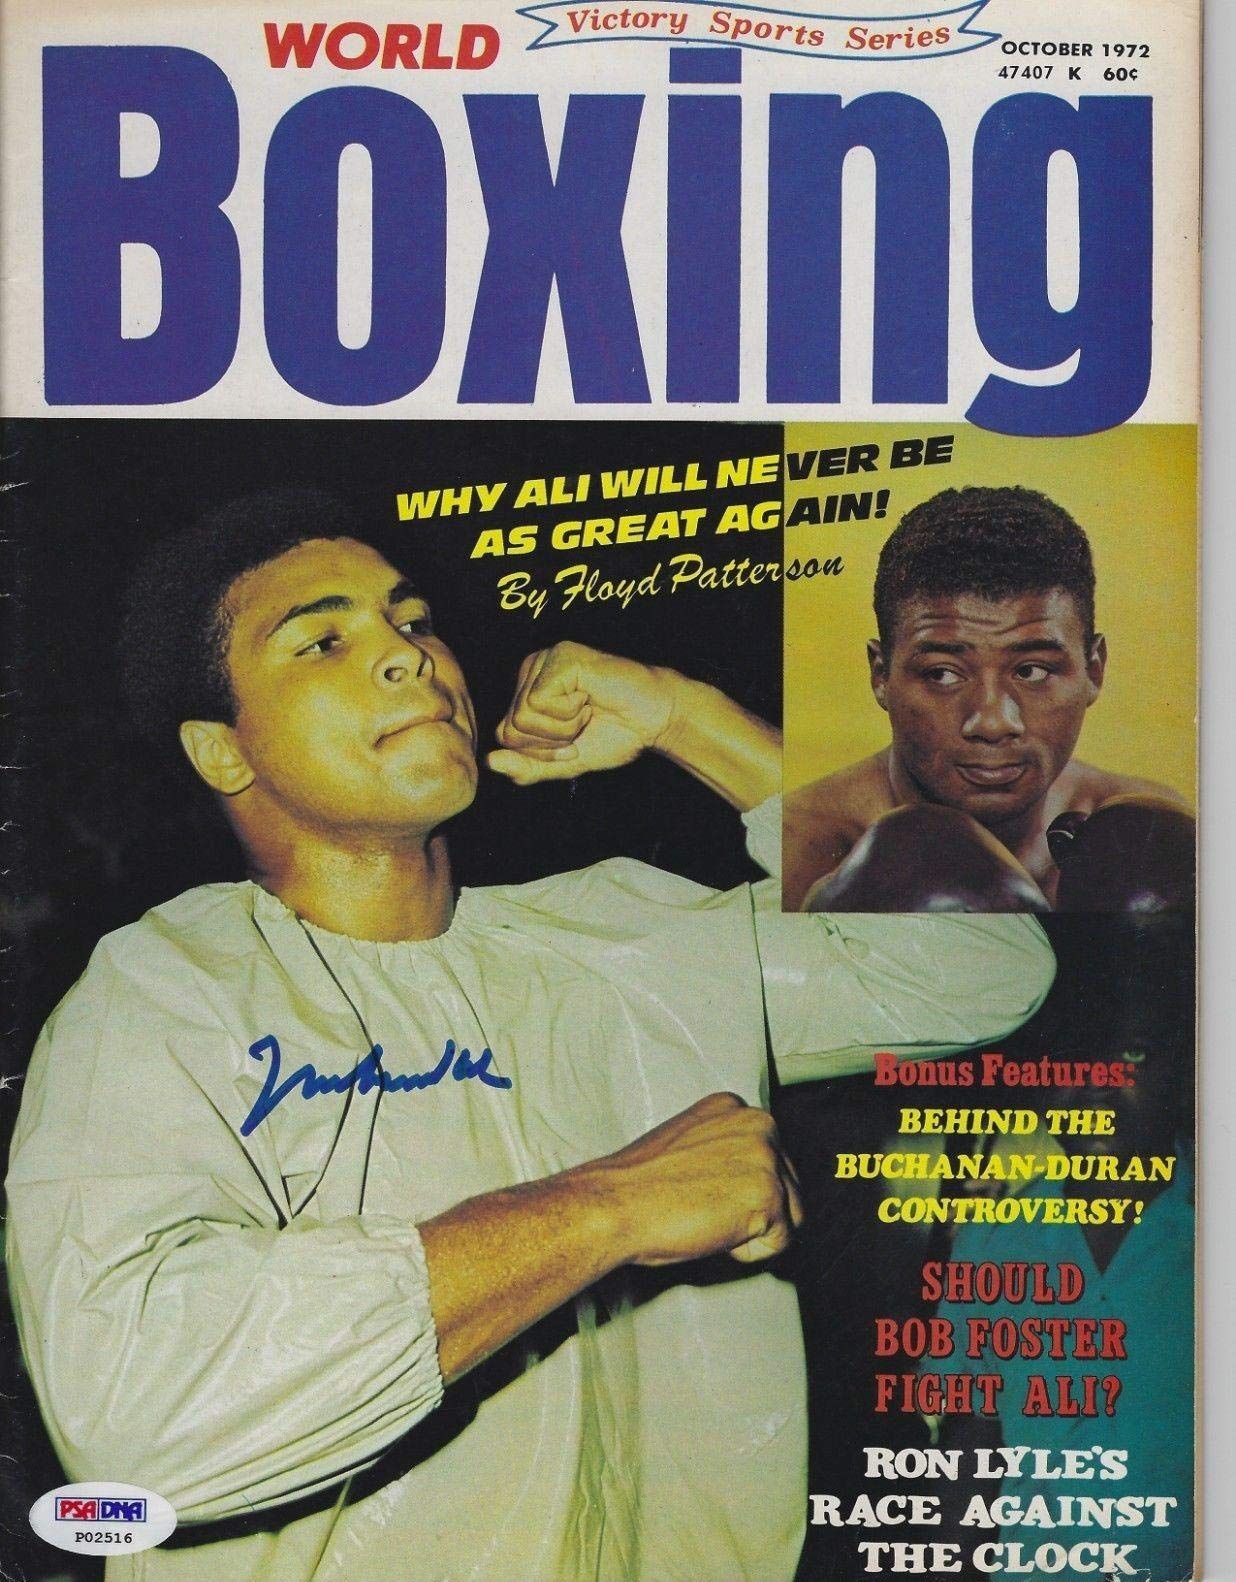 MUHAMMAD ALI Signed WORLD BOXING Magazine with COA (NO Label) PSA/DNA Certified Autographed Boxing Magazines